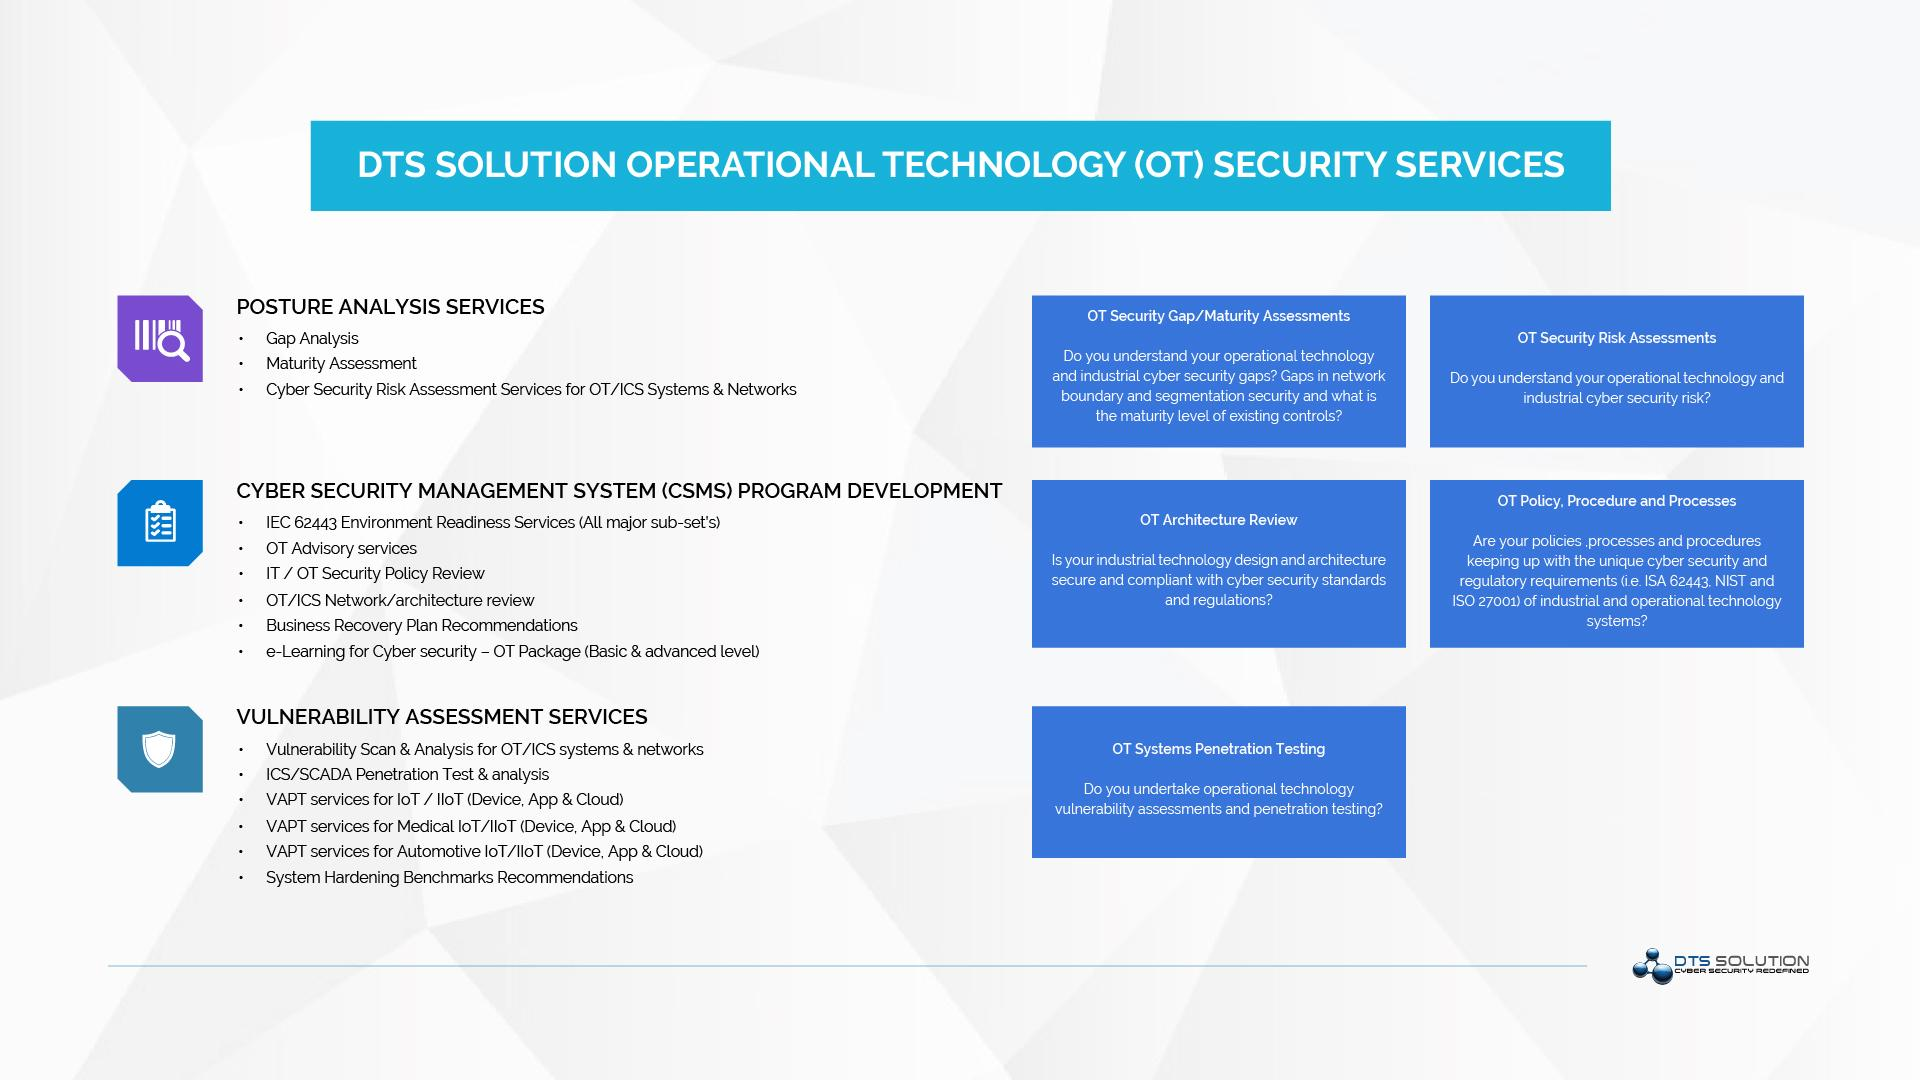 DTS OT Security Services